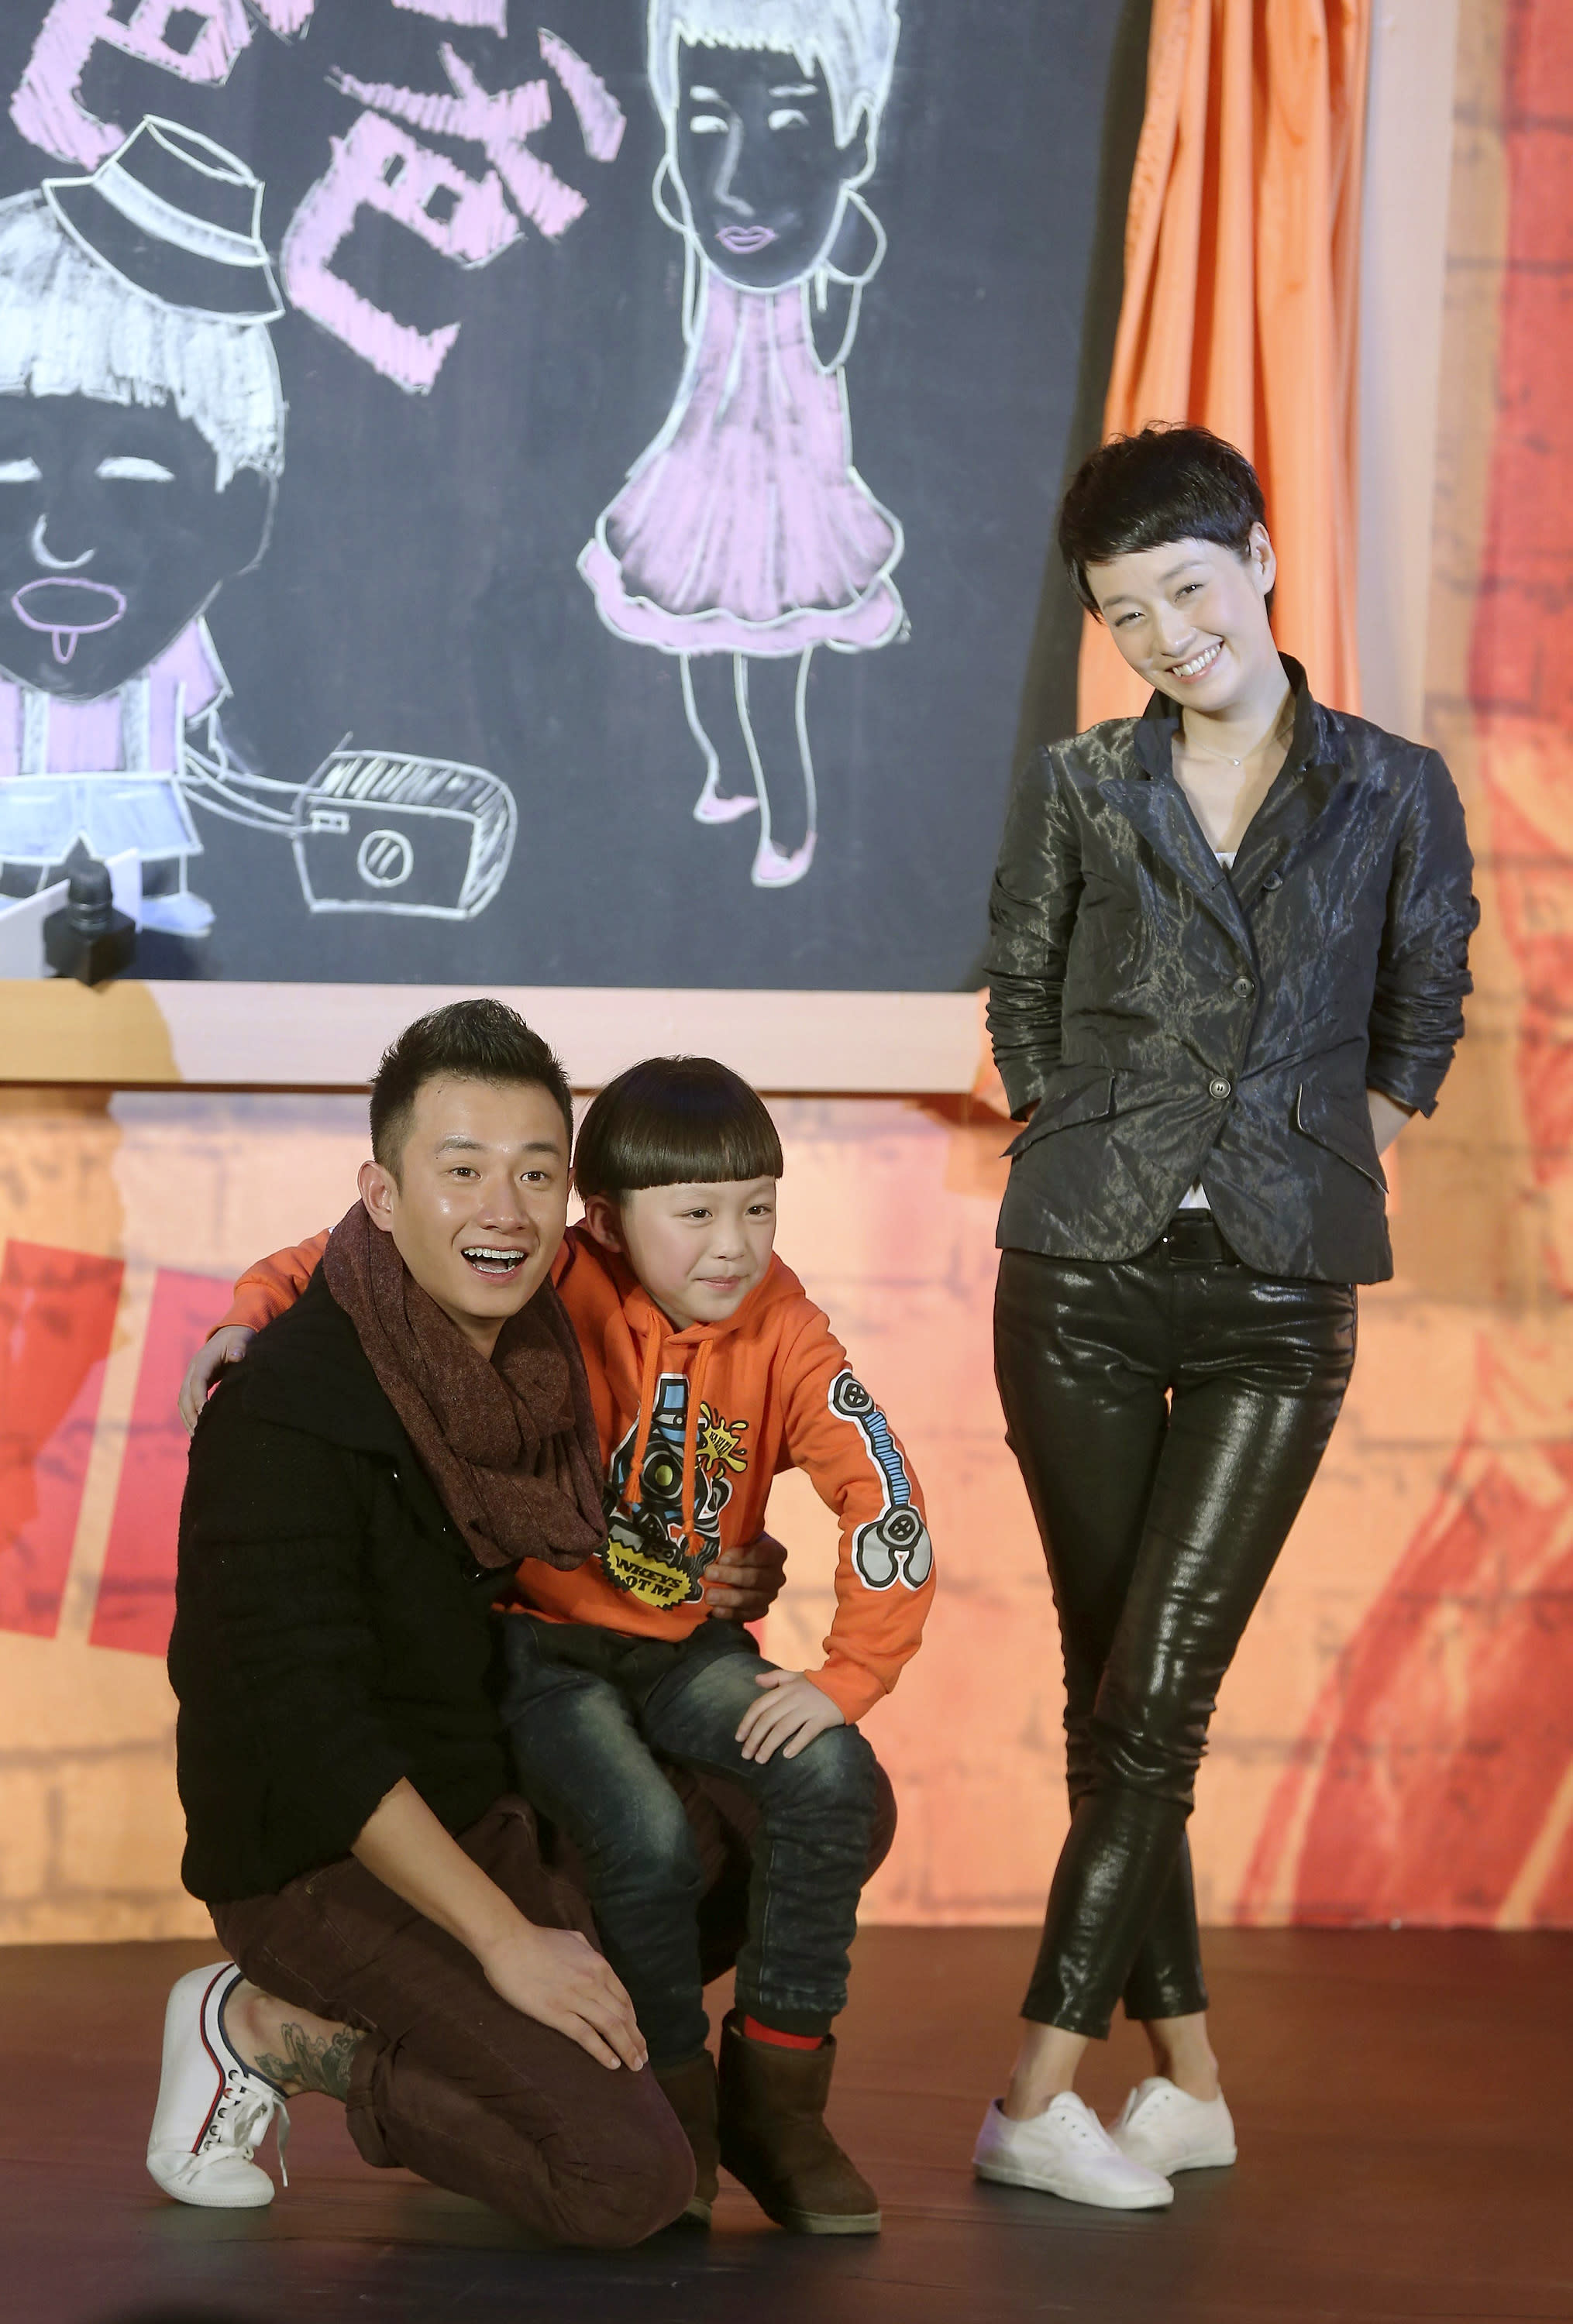 """In this Wednesday Dec. 5, 2012 photo, Chinese actor Wen Zhang, left, and his wife Ma Yili, a producer and actress pose with a child actor as they attend a presser for their TV series """"Little Daddy"""" in Beijing, China. The Chinese actor's apology to his actress wife following rumors of his infidelity has set a record for comments and retweets on China's version of Twitter. (AP Photo) CHINA OUT"""